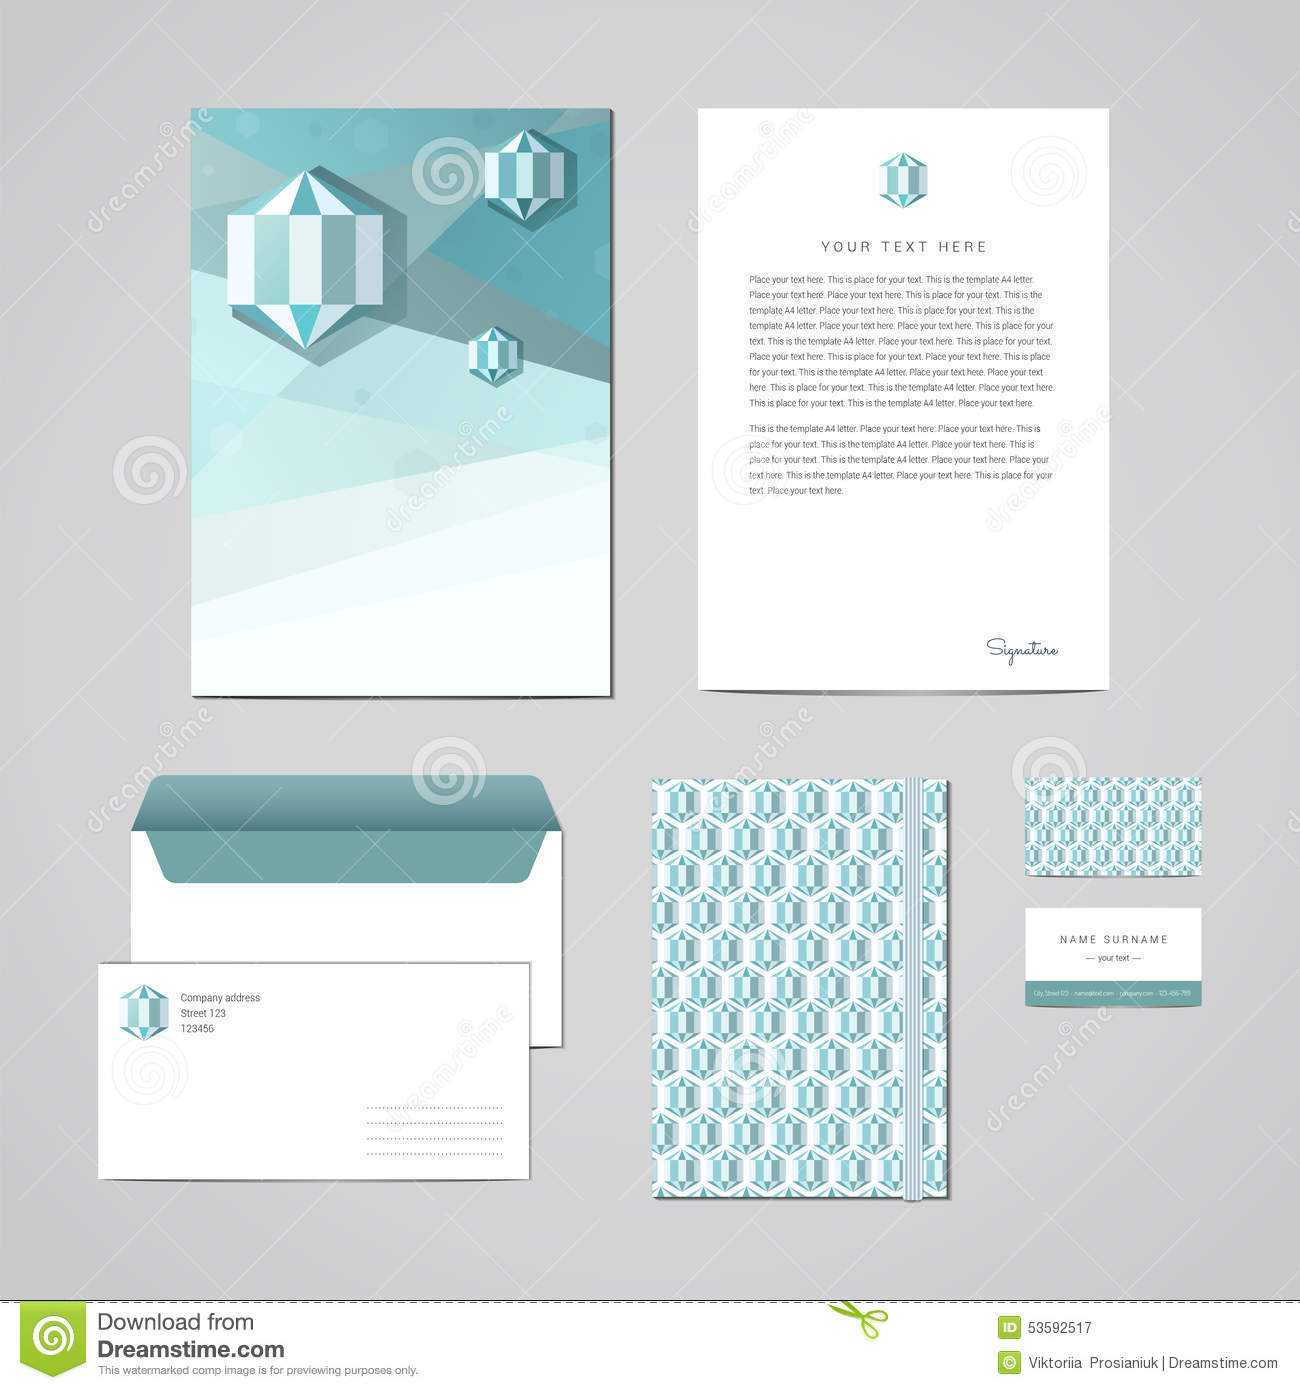 Corporate Identity Design Template. Documentation For in Business Card Letterhead Envelope Template